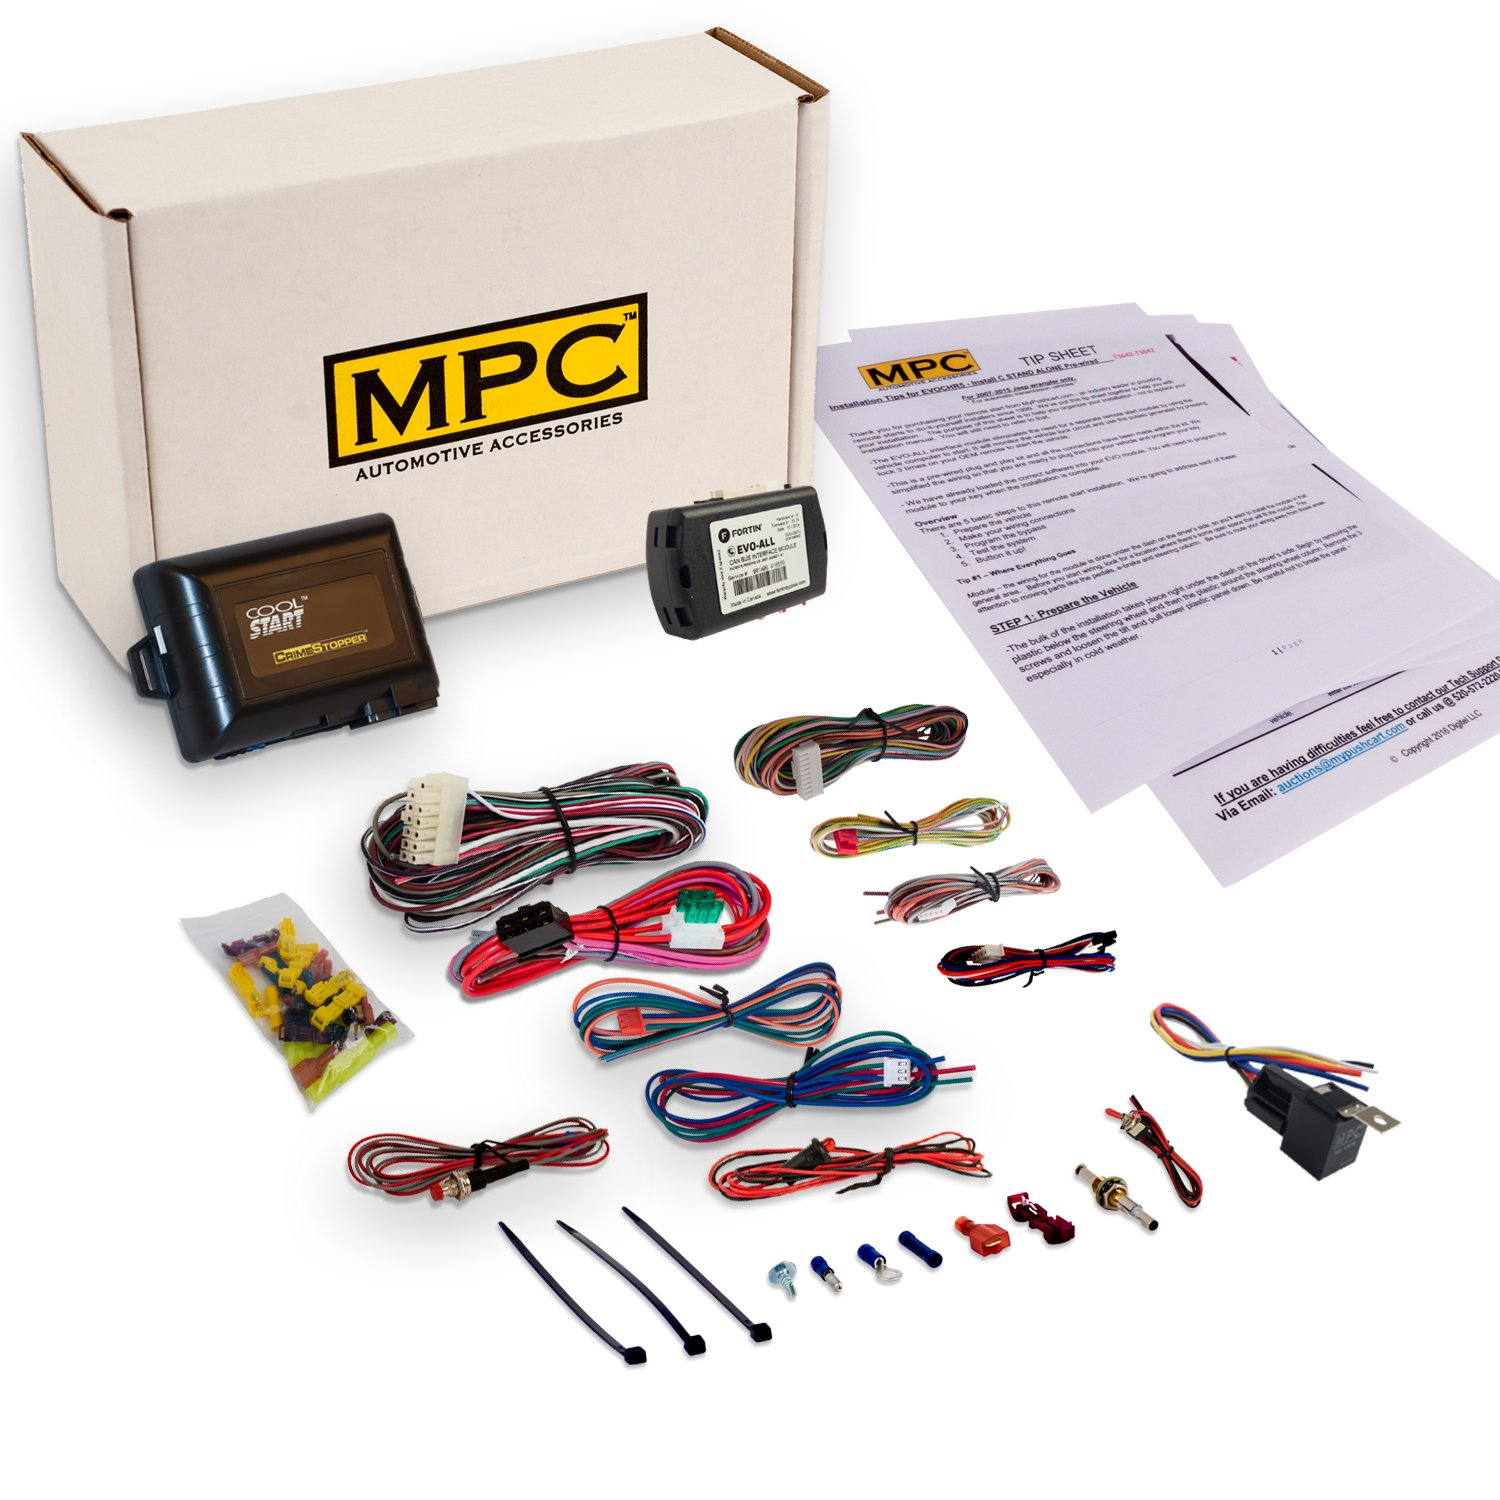 MPC Complete Add-On Remote Start Kit For 2012-2015 Toyota Tacoma with Key to Start - Uses Factory Remotes